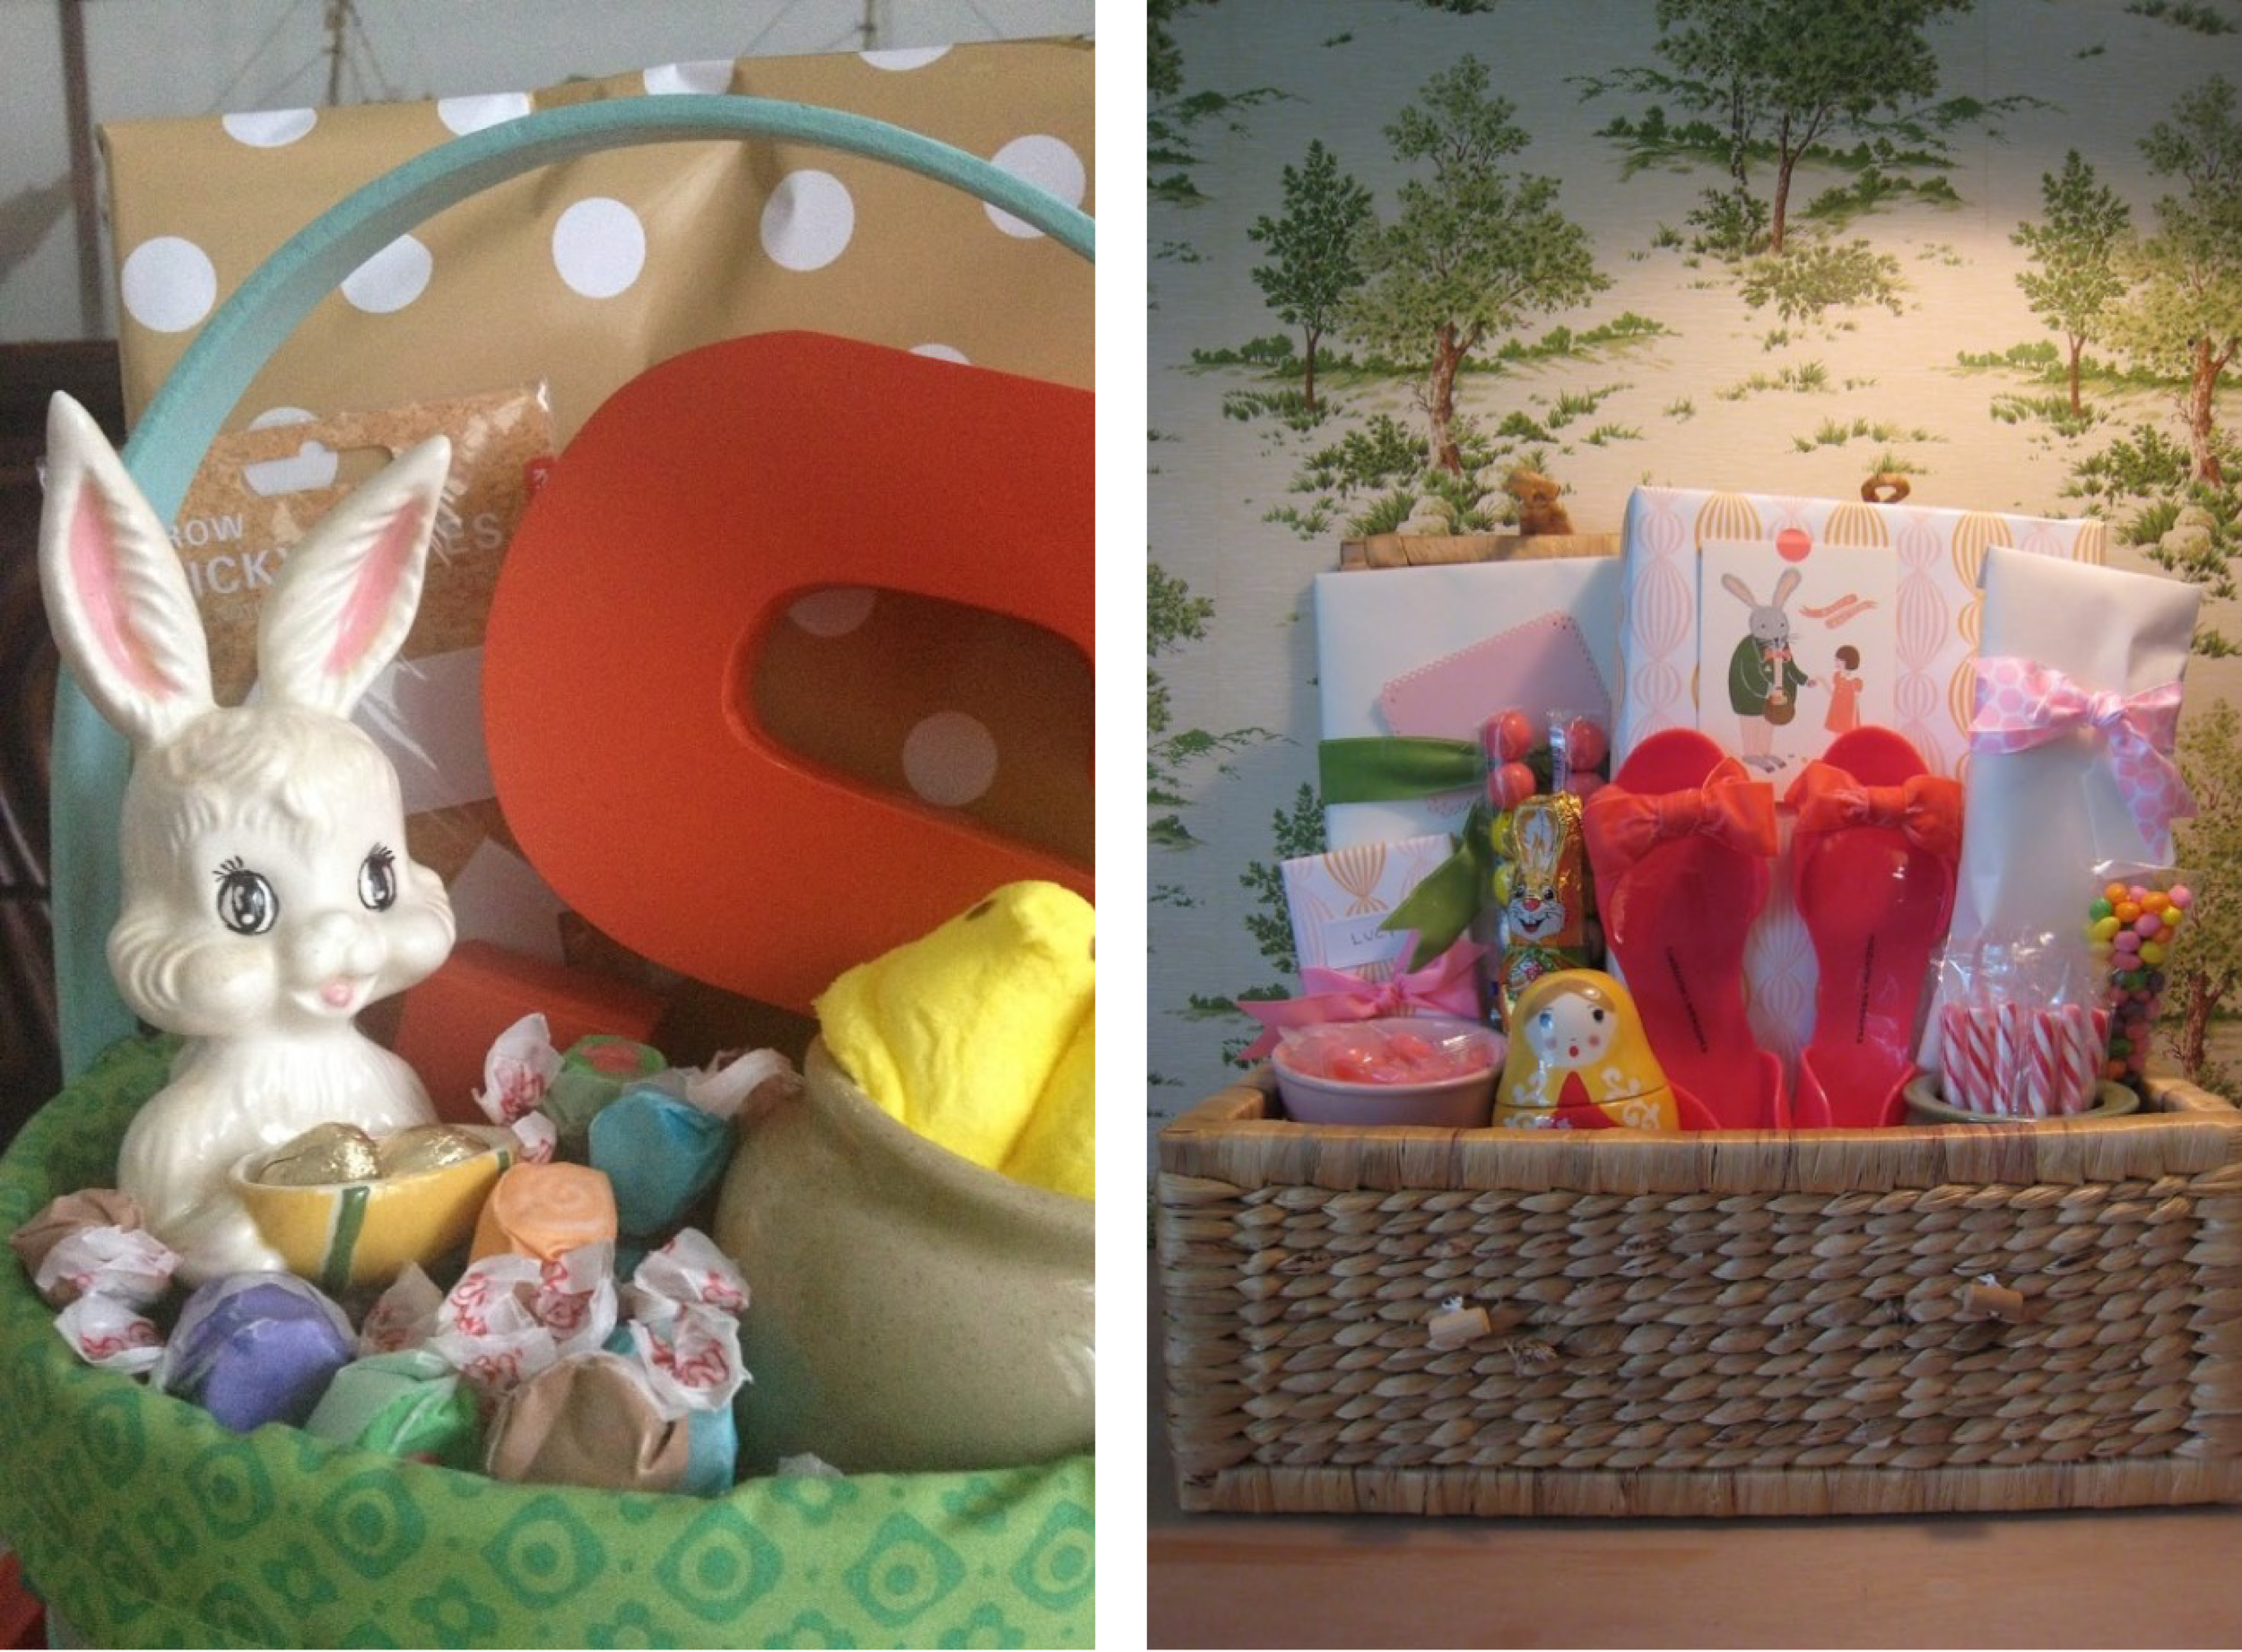 Past-Easter-Baskets-01.png